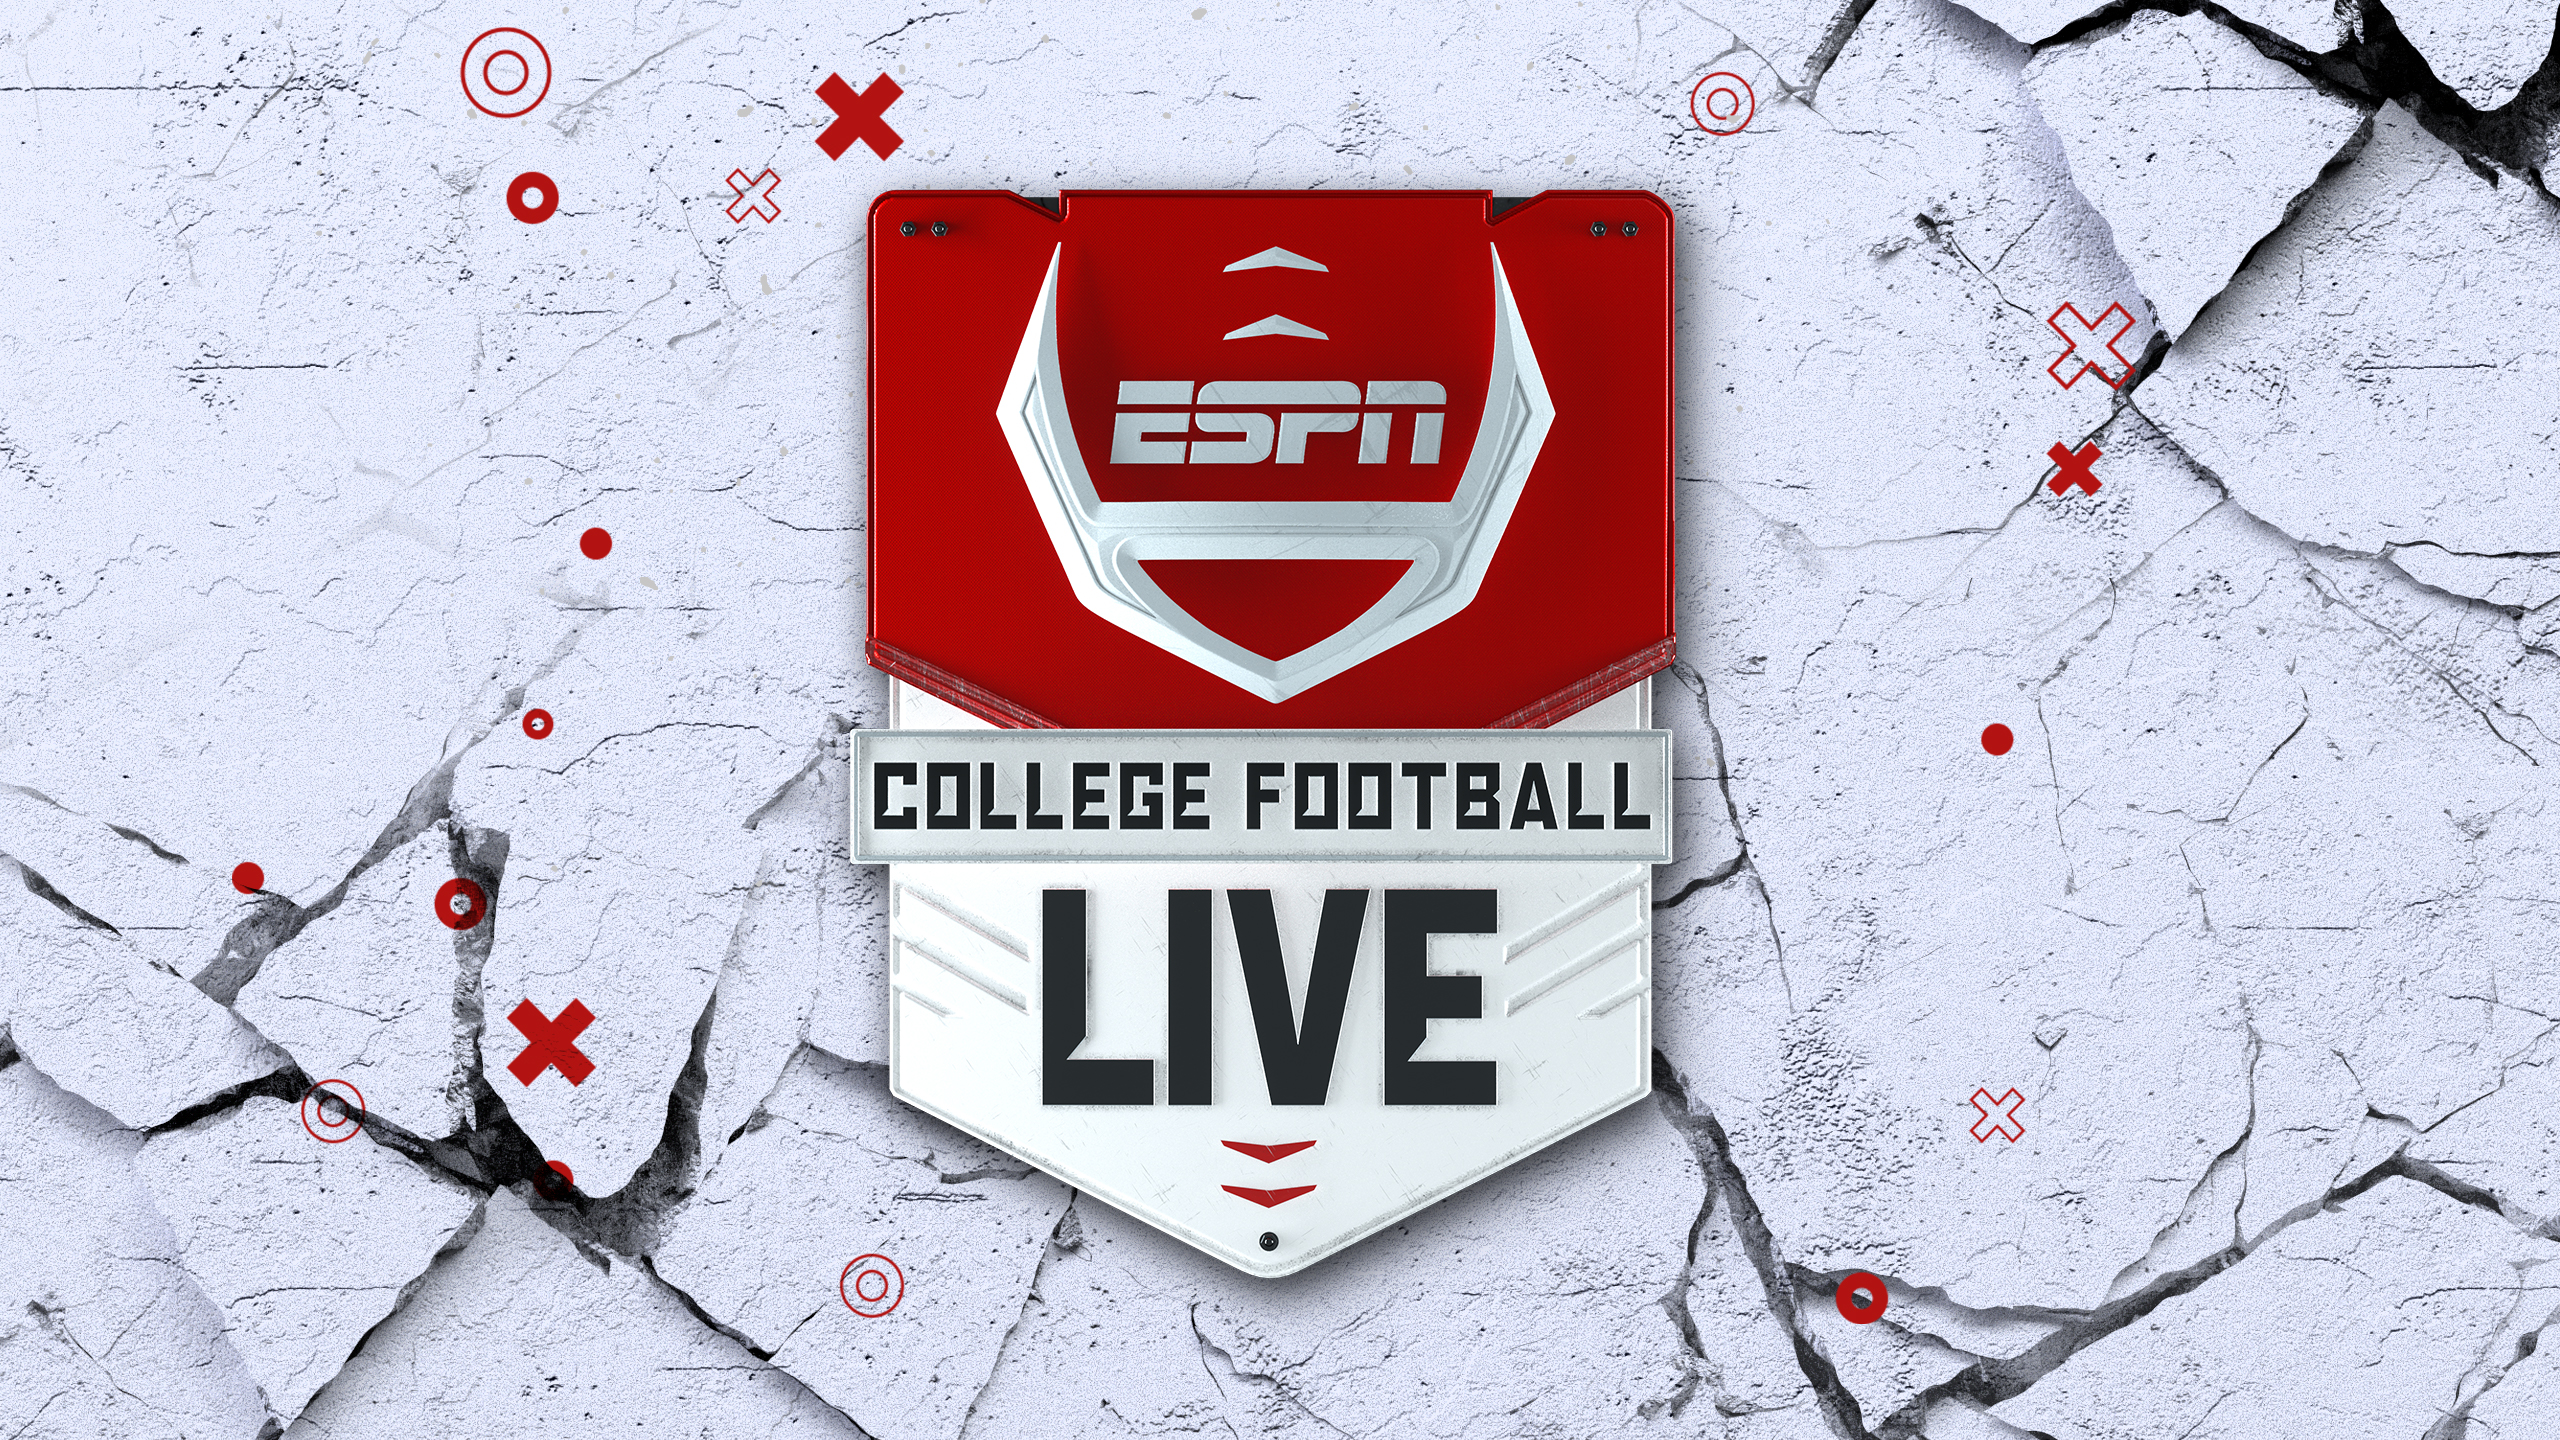 Mon, 11/12 - College Football Live Presented by ZipRecruiter